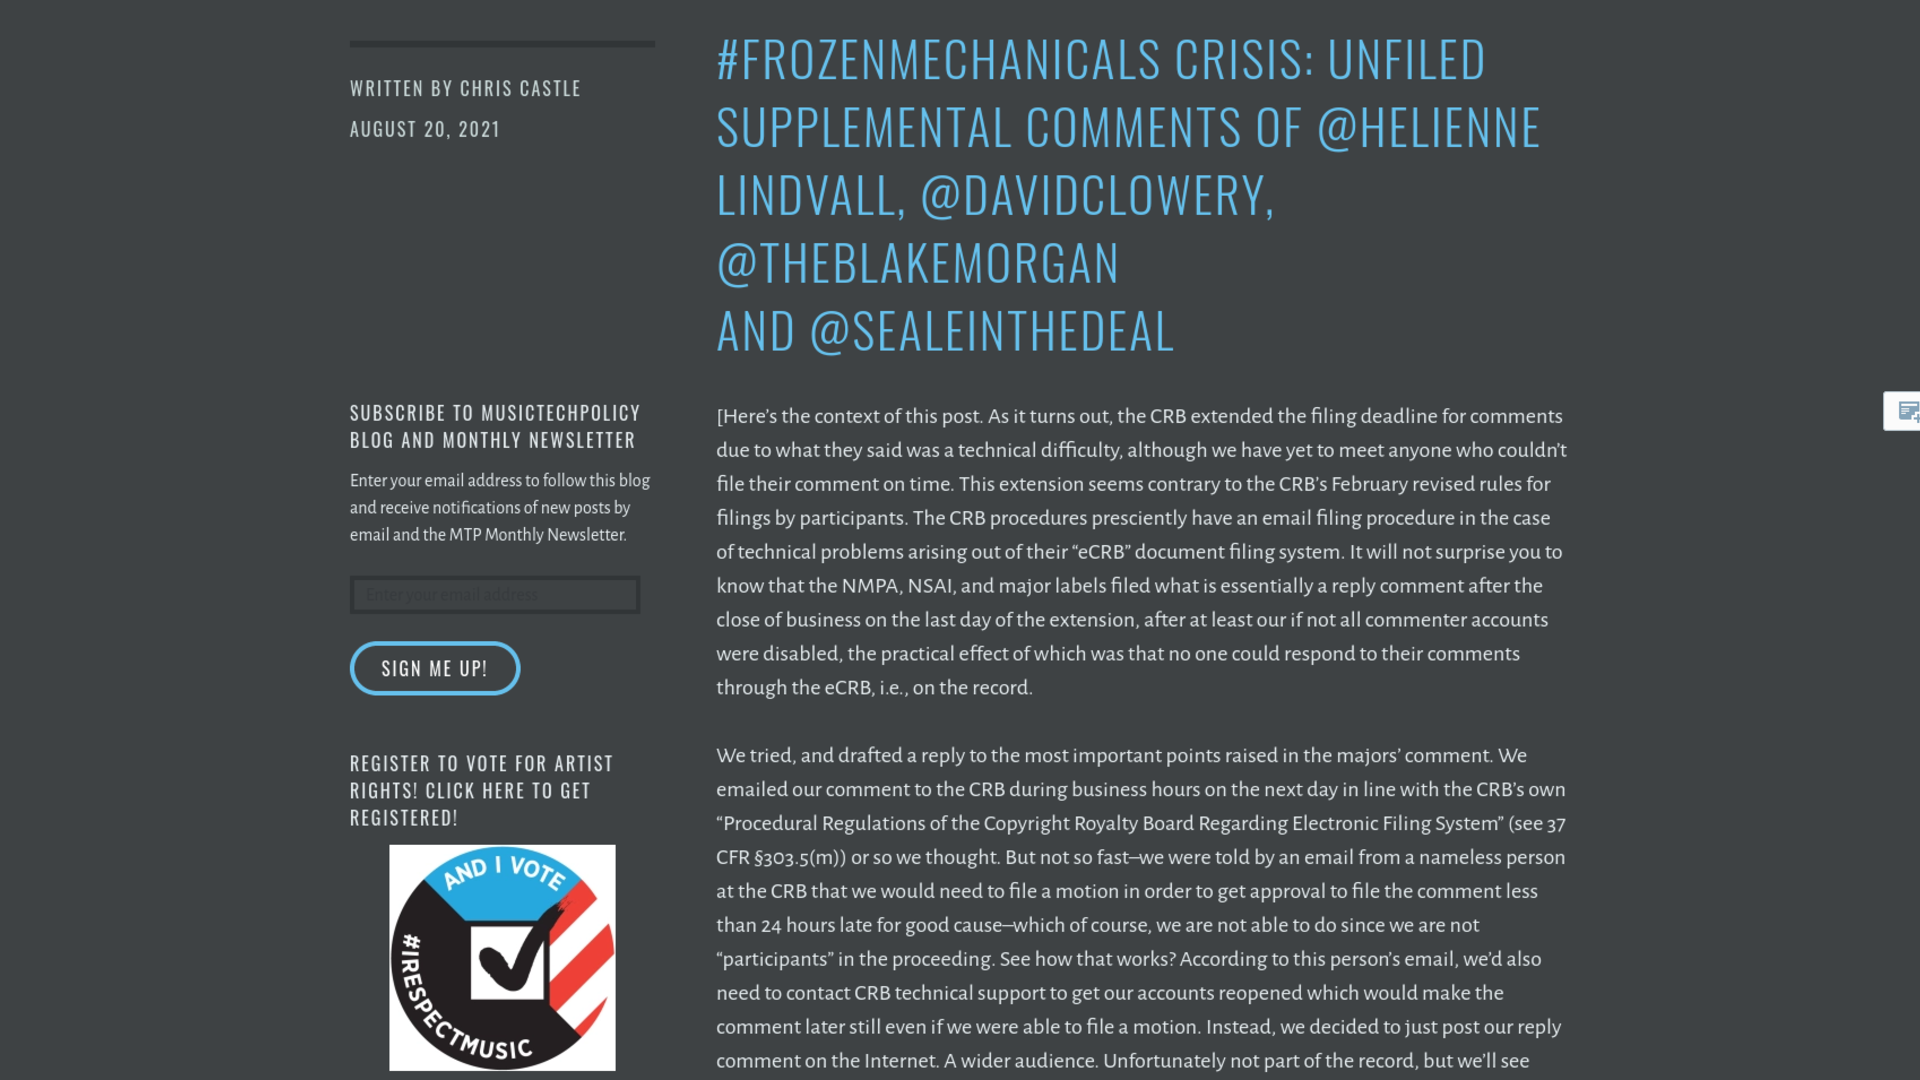 Fairness Rocks News #FrozenMechanicals Crisis: Unfiled Supplemental Comments of @helienne Lindvall, @davidclowery, @theblakemorgan and @sealeinthedeal